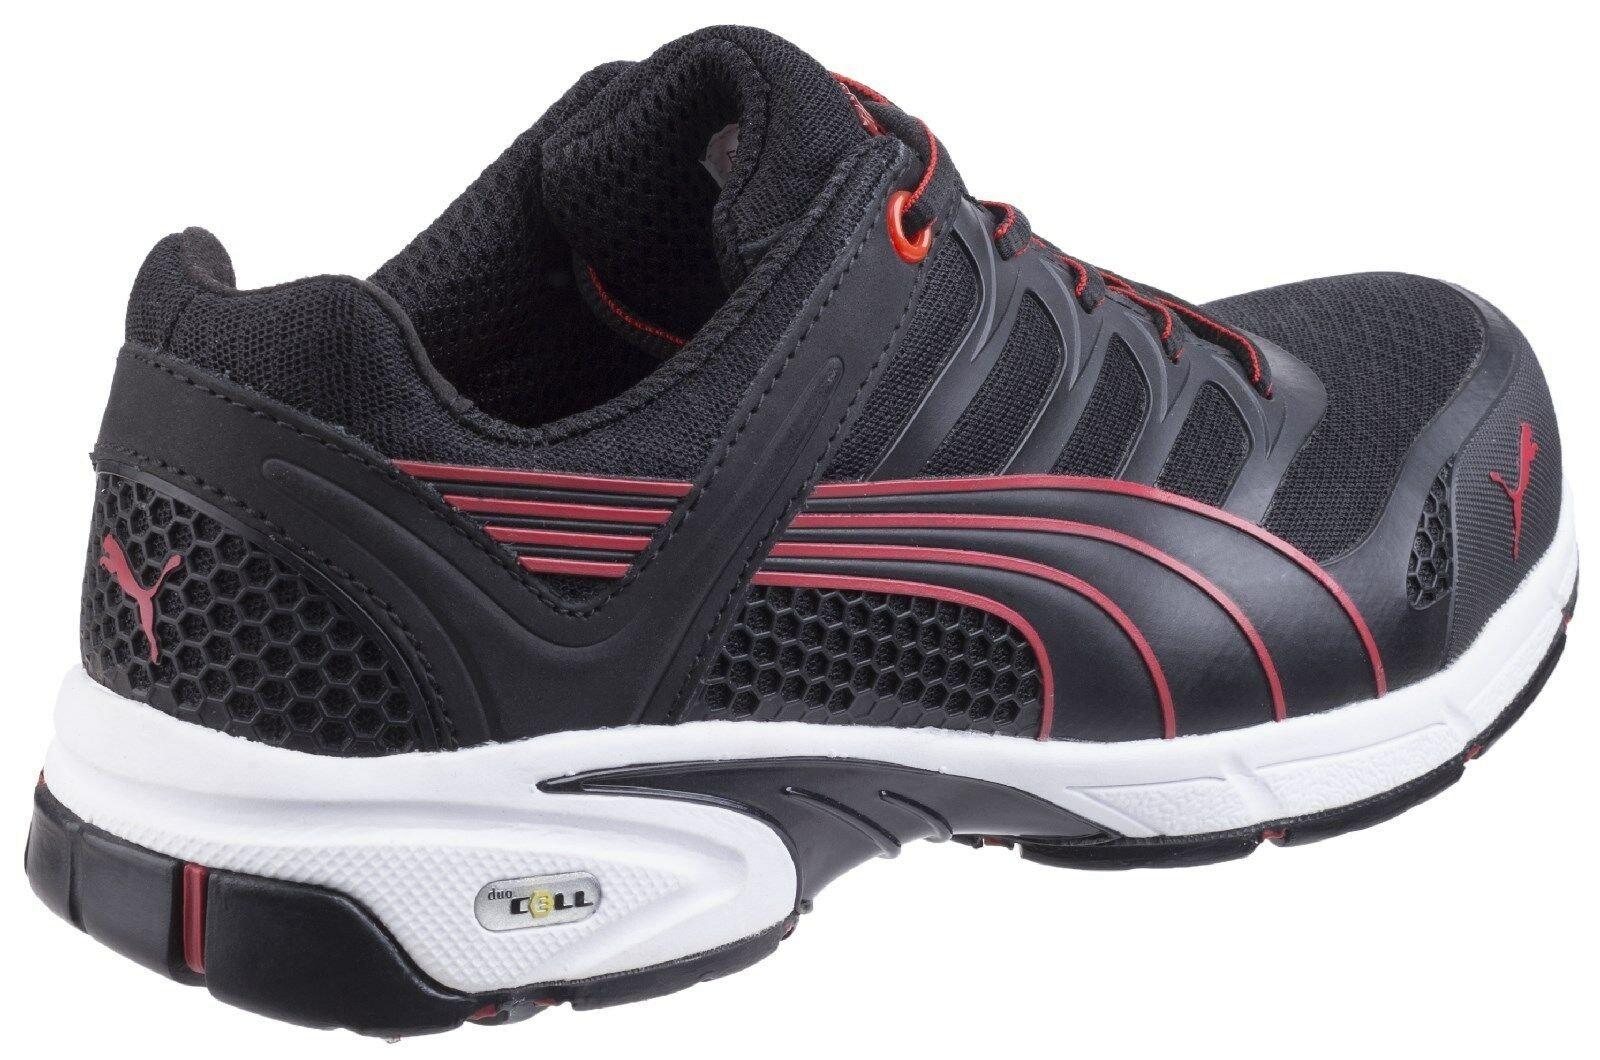 Puma Trainers Fuse Motion faible Safety Trainers Puma homme Industrial Composite Toe Cap Work Shoe 70259c